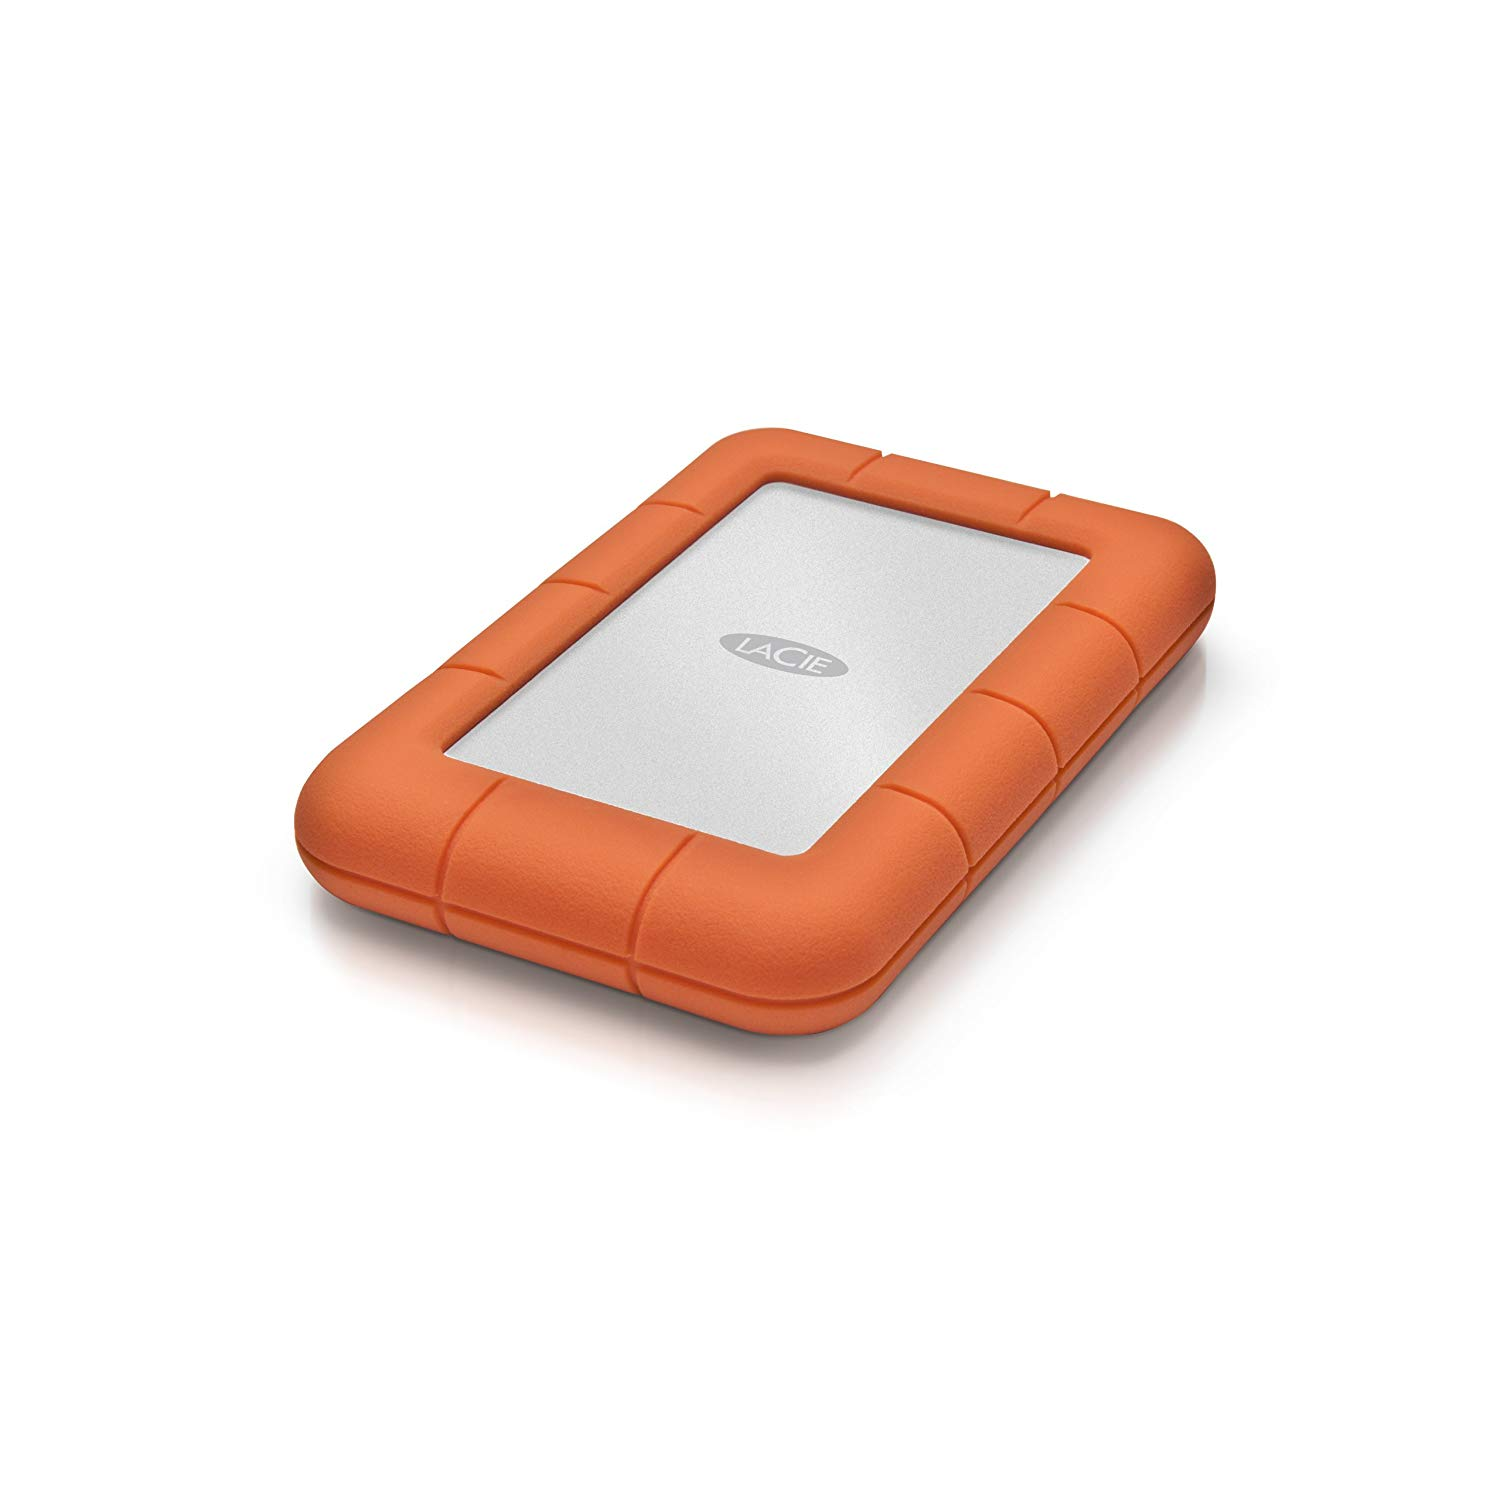 LaCie Rugged Mini 1TB USB 3.0 / USB 2.0 Portable Hard Drive